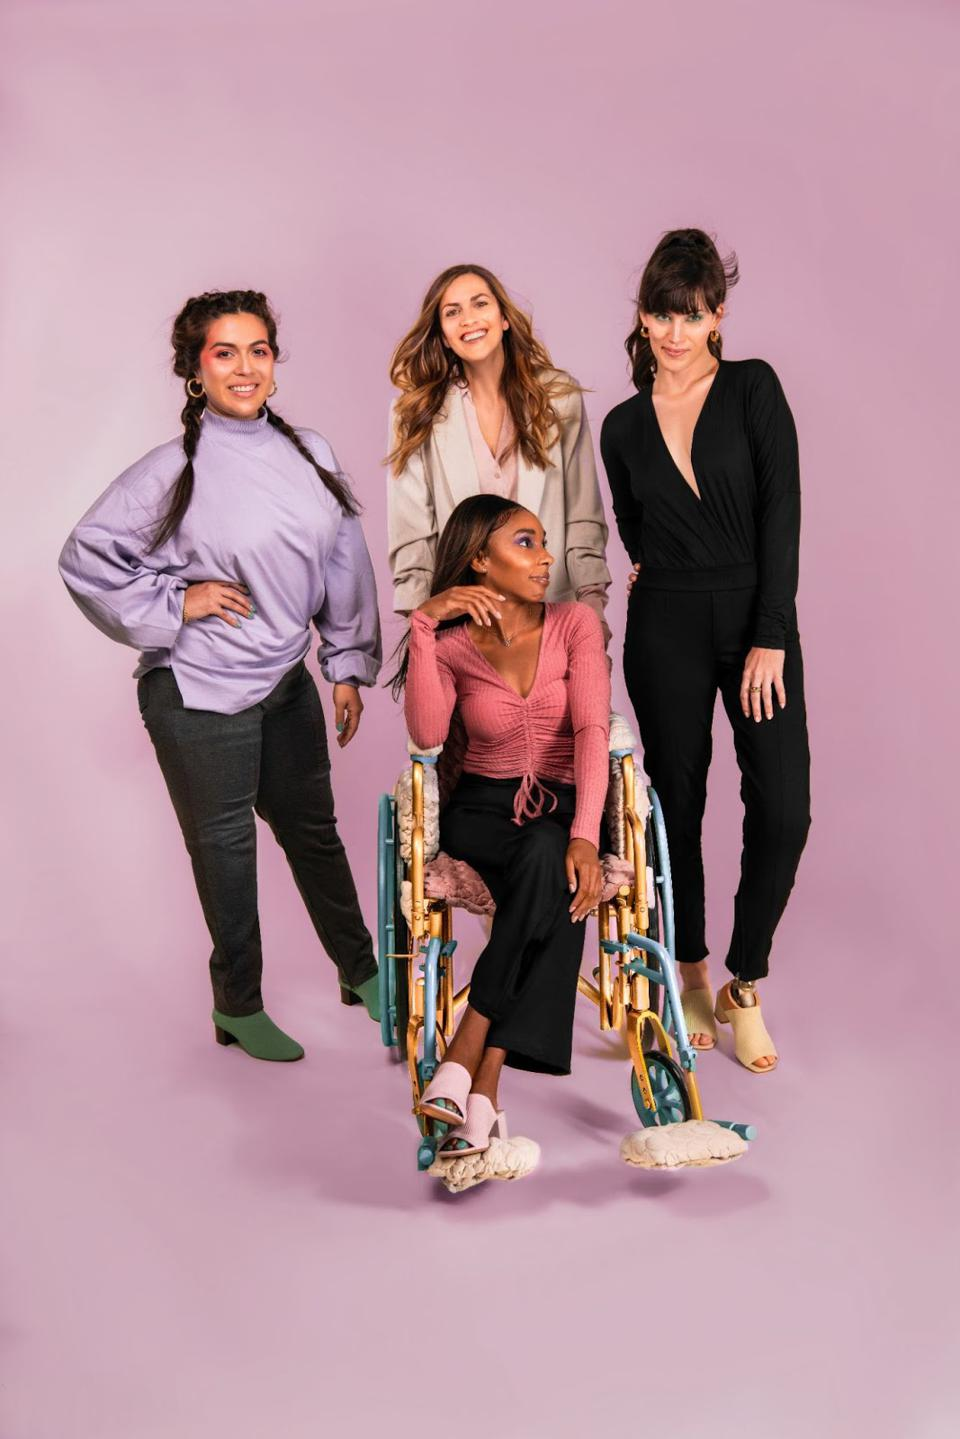 Four women, one in a wheelchair, pose. The background is pink.